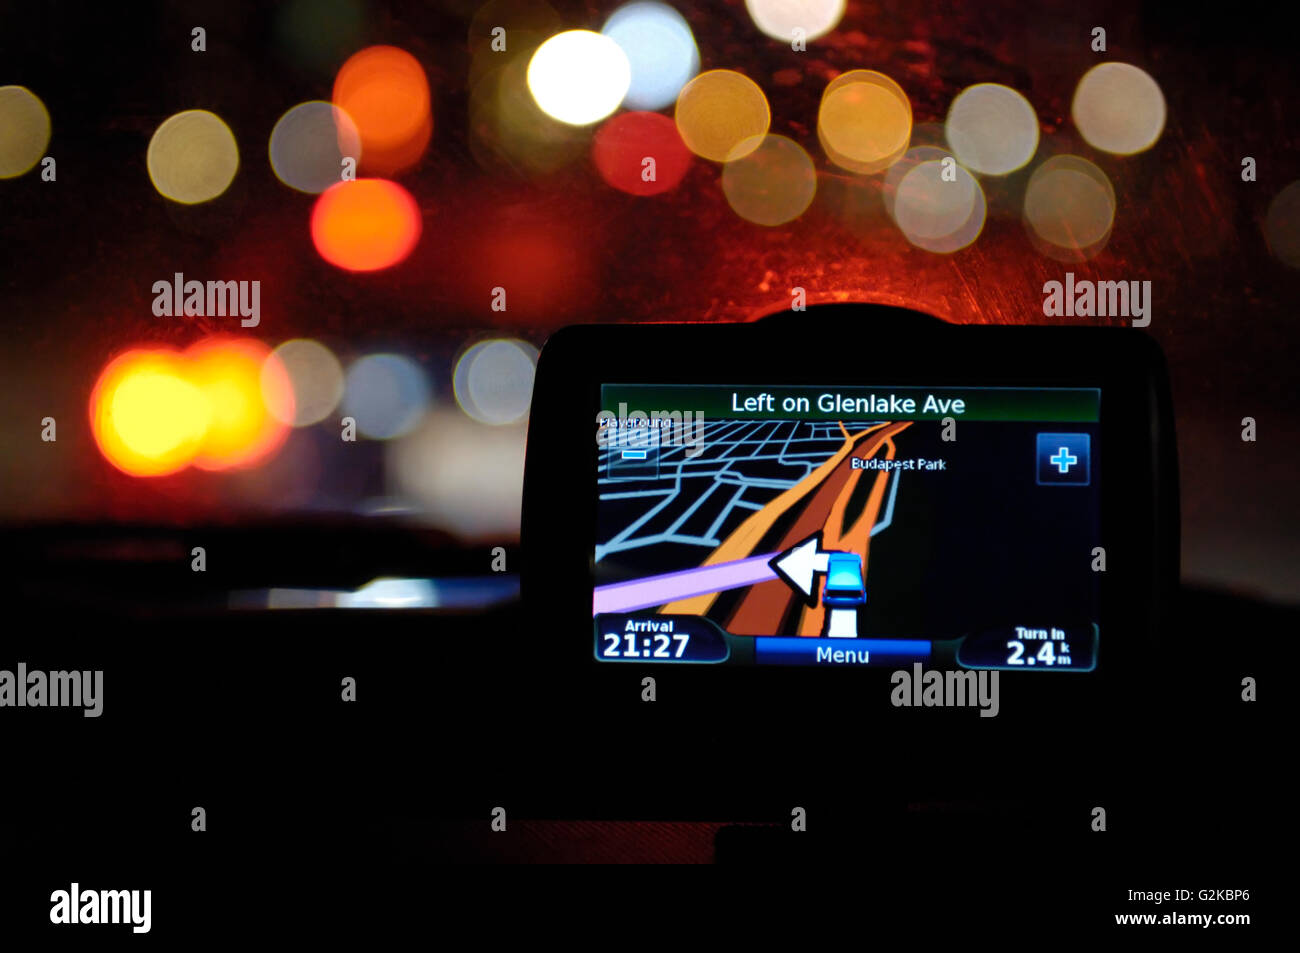 GPS navigational device on a windshield of a car at night - Stock Image